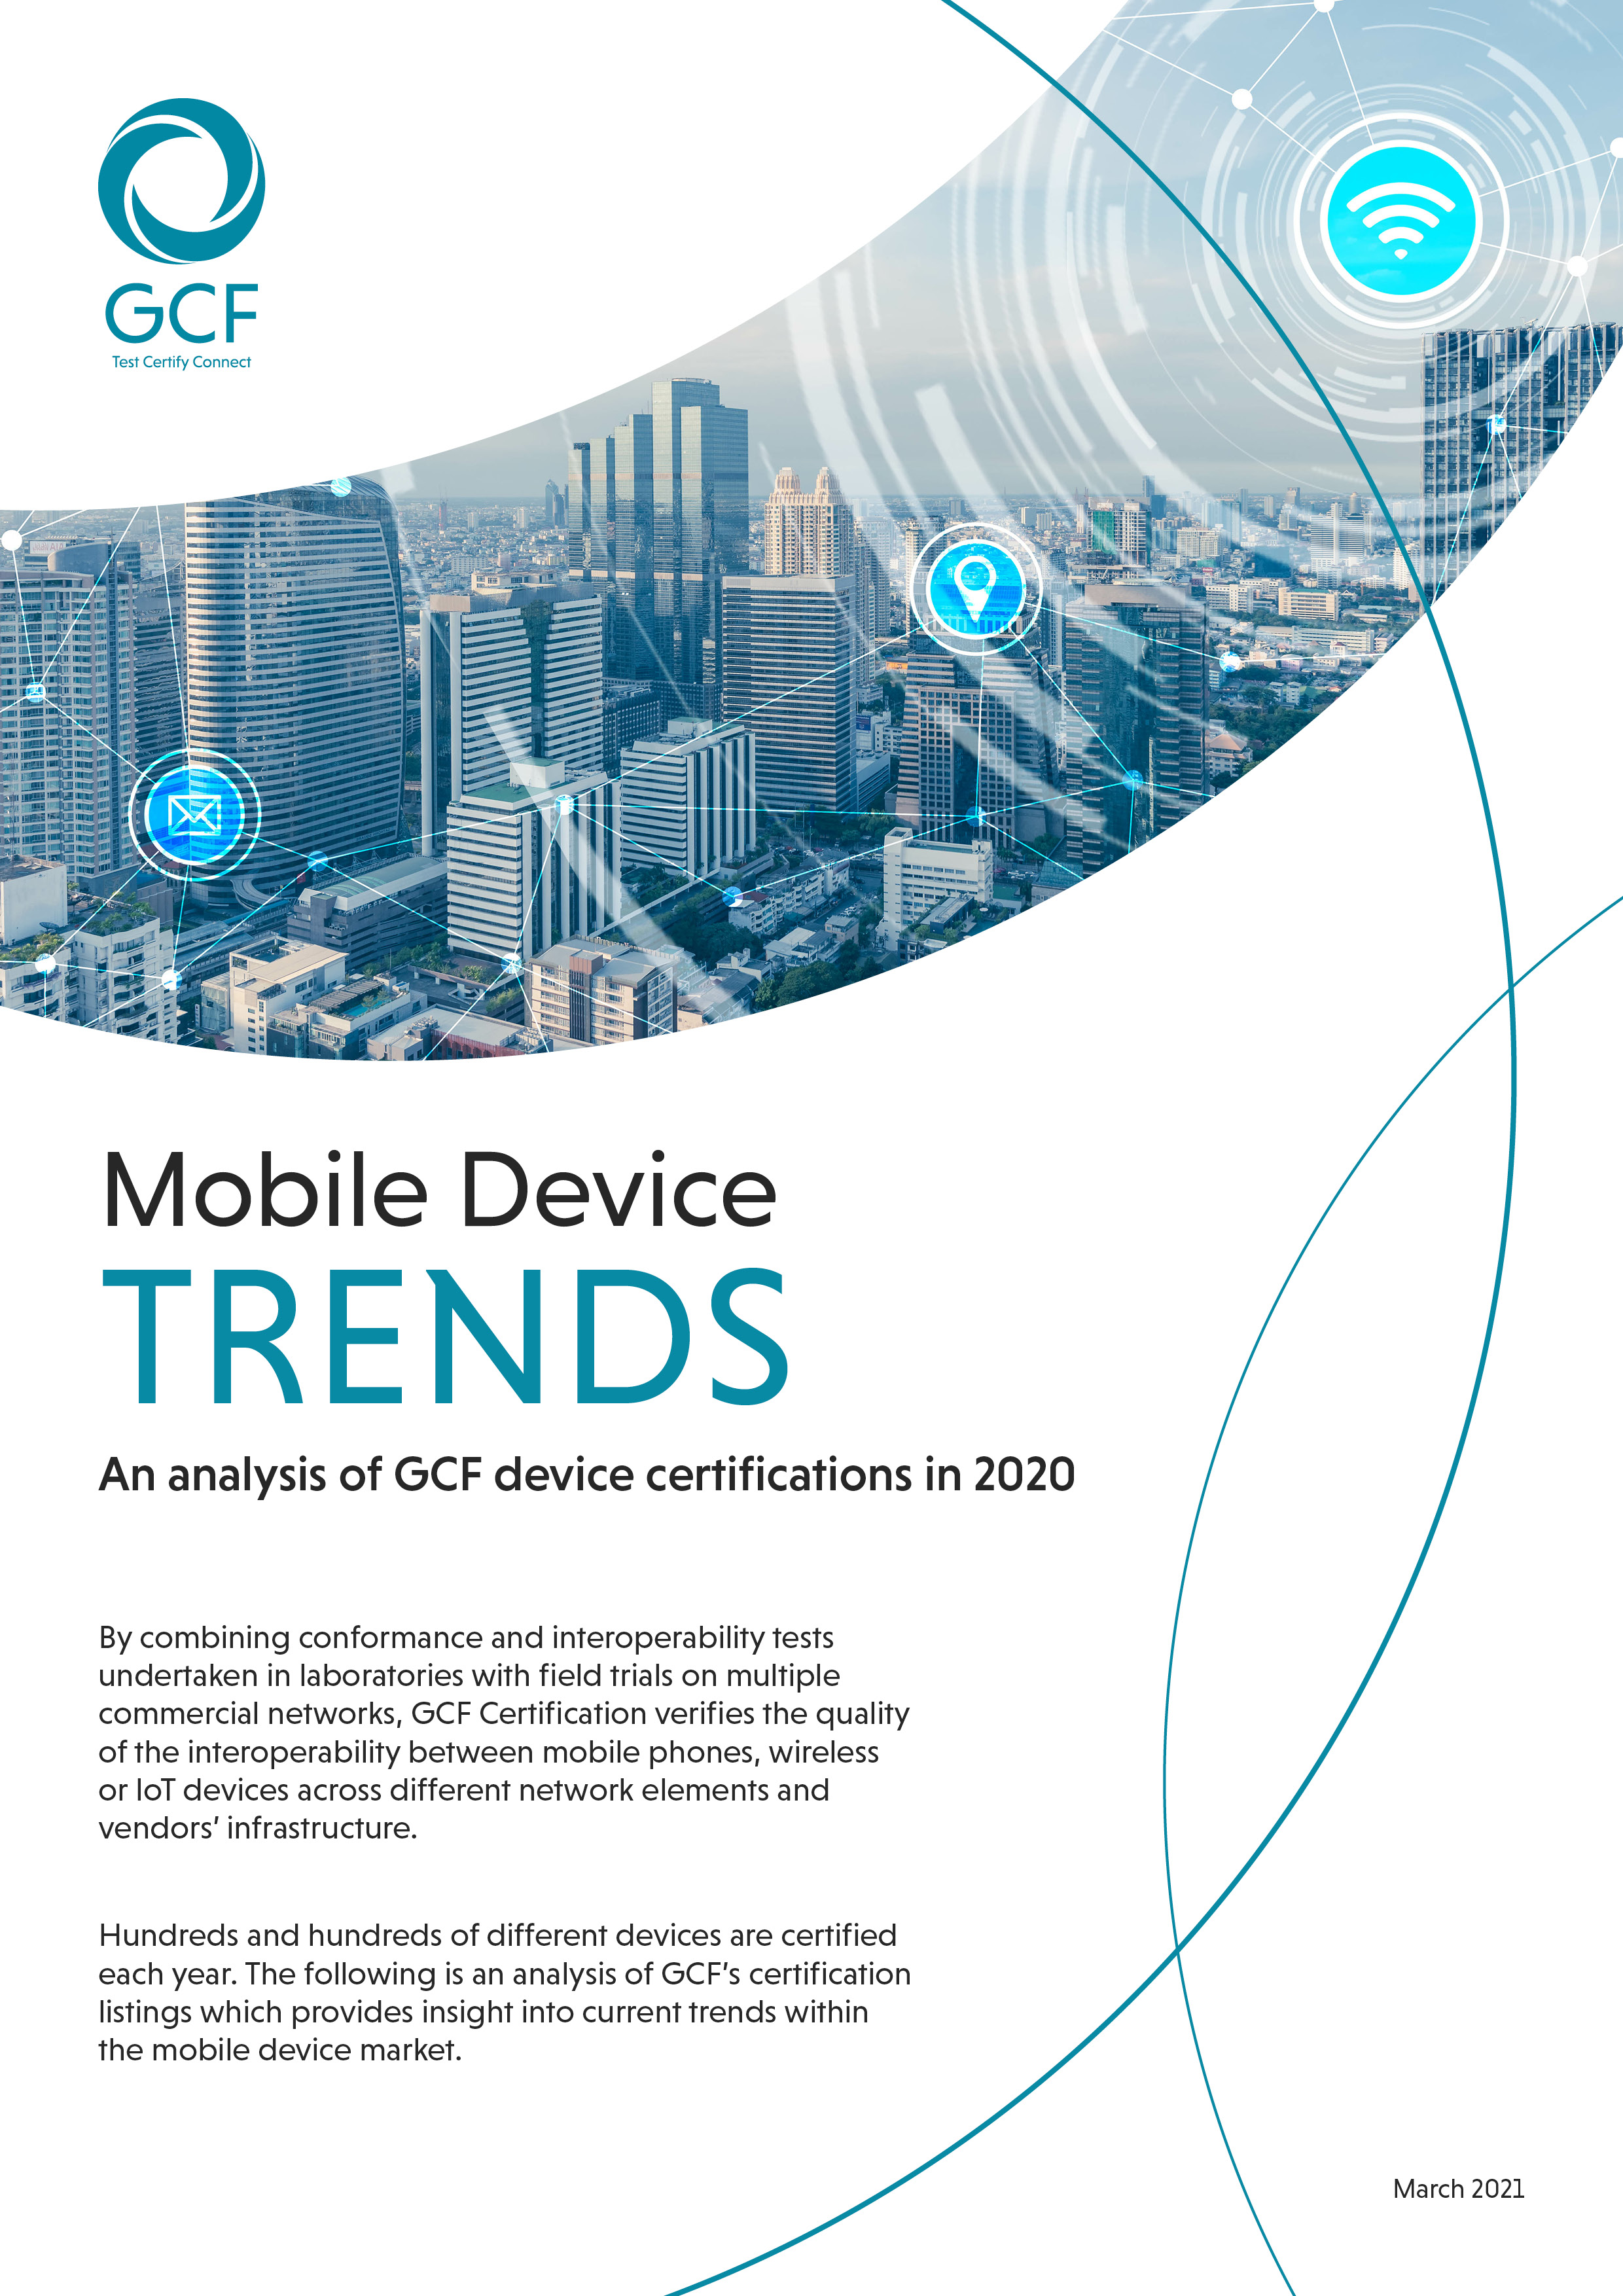 Mobile Device Trends 2020